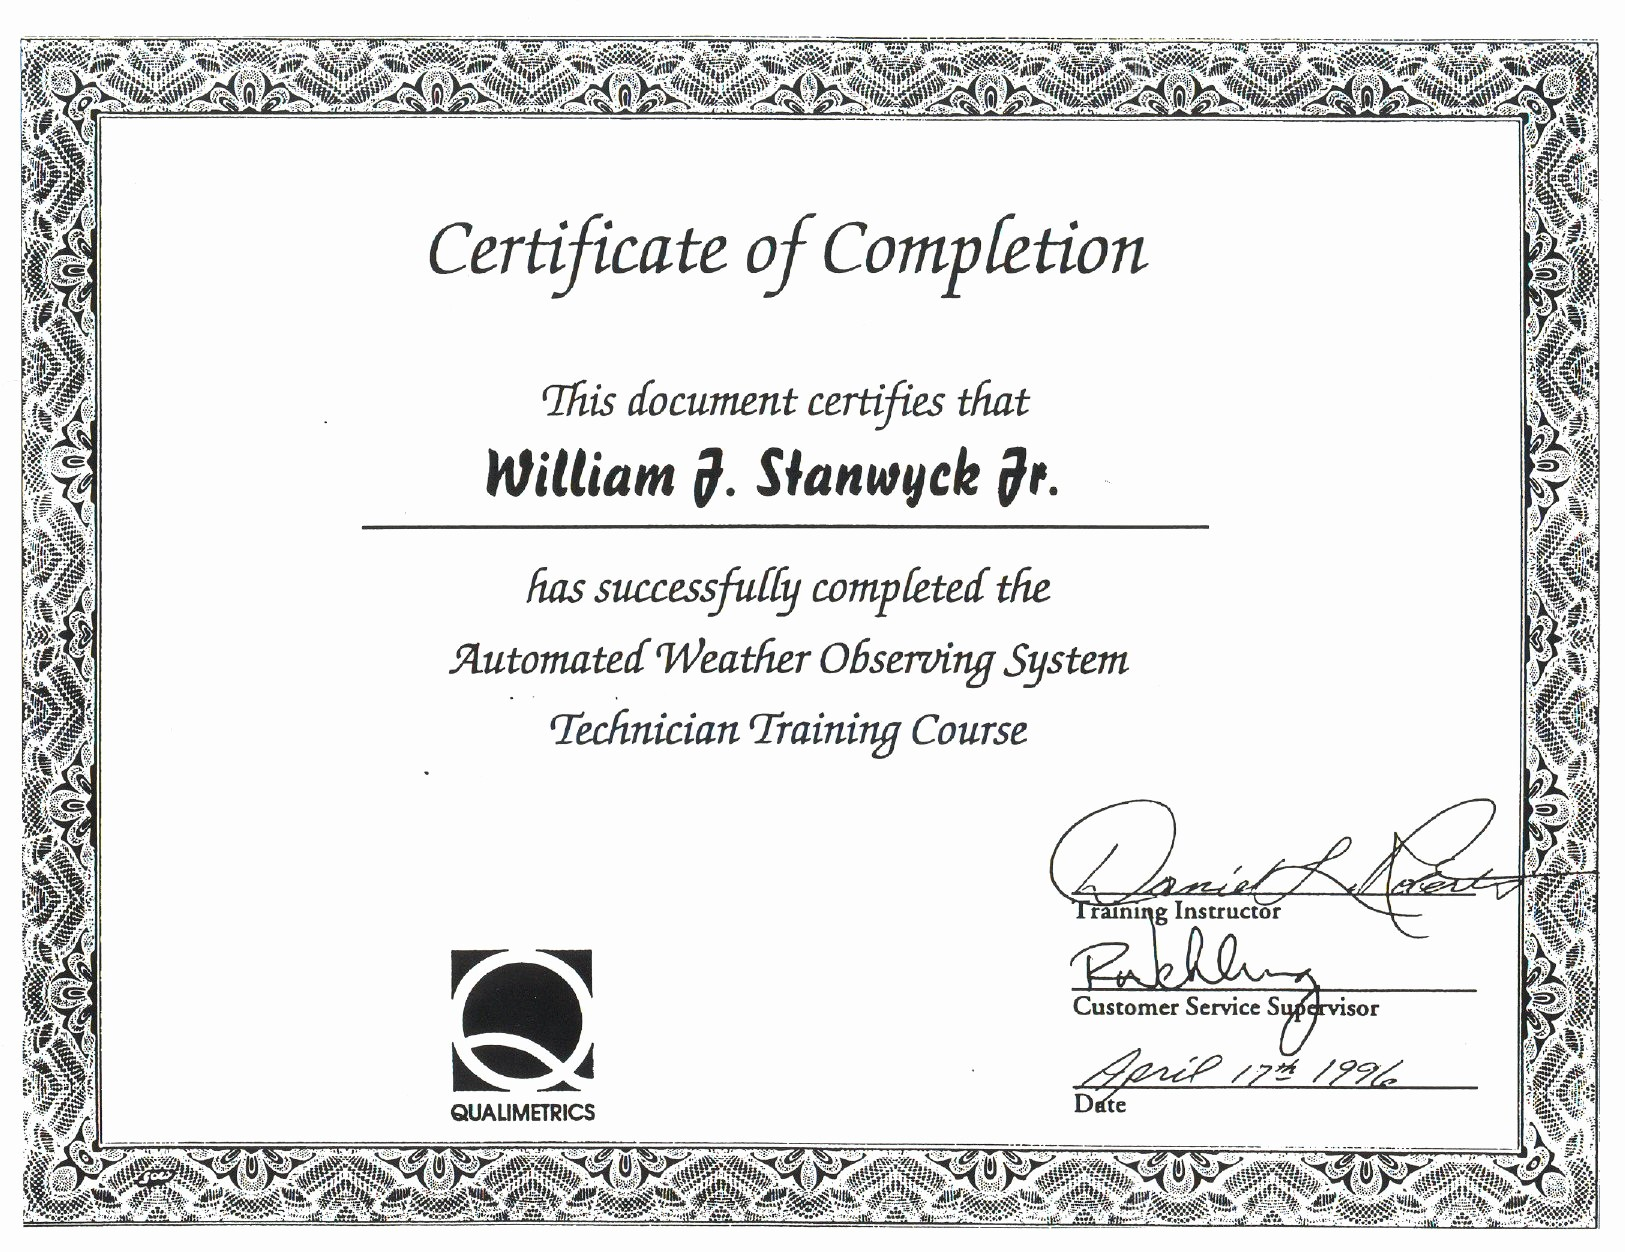 Templates for Certificates Of Completion Elegant 13 Certificate Of Pletion Templates Excel Pdf formats